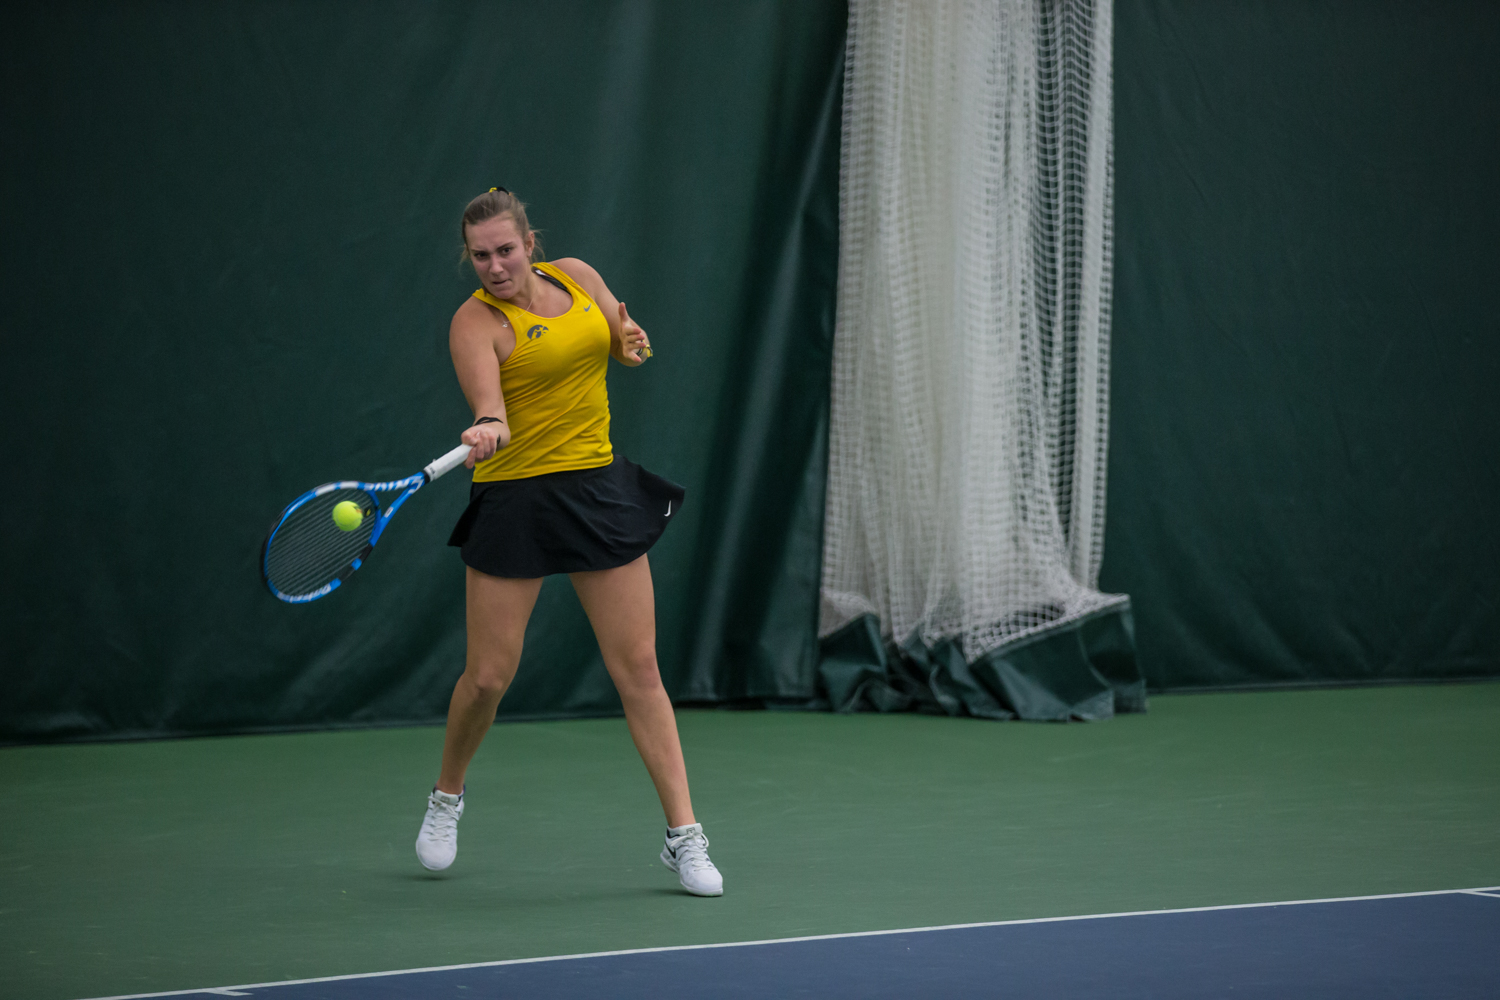 Iowa%27s+Ashleigh+Jacobs+hits+a+forehand+during+a+women%27s+tennis+match+between+Iowa+and+Xavier+at+the+Hawkeye+Tennis+and+Recreation+Center+on+Friday%2C+January+18%2C+2019.+The+Hawkeyes+swept+the+Musketeers%2C+7-0.